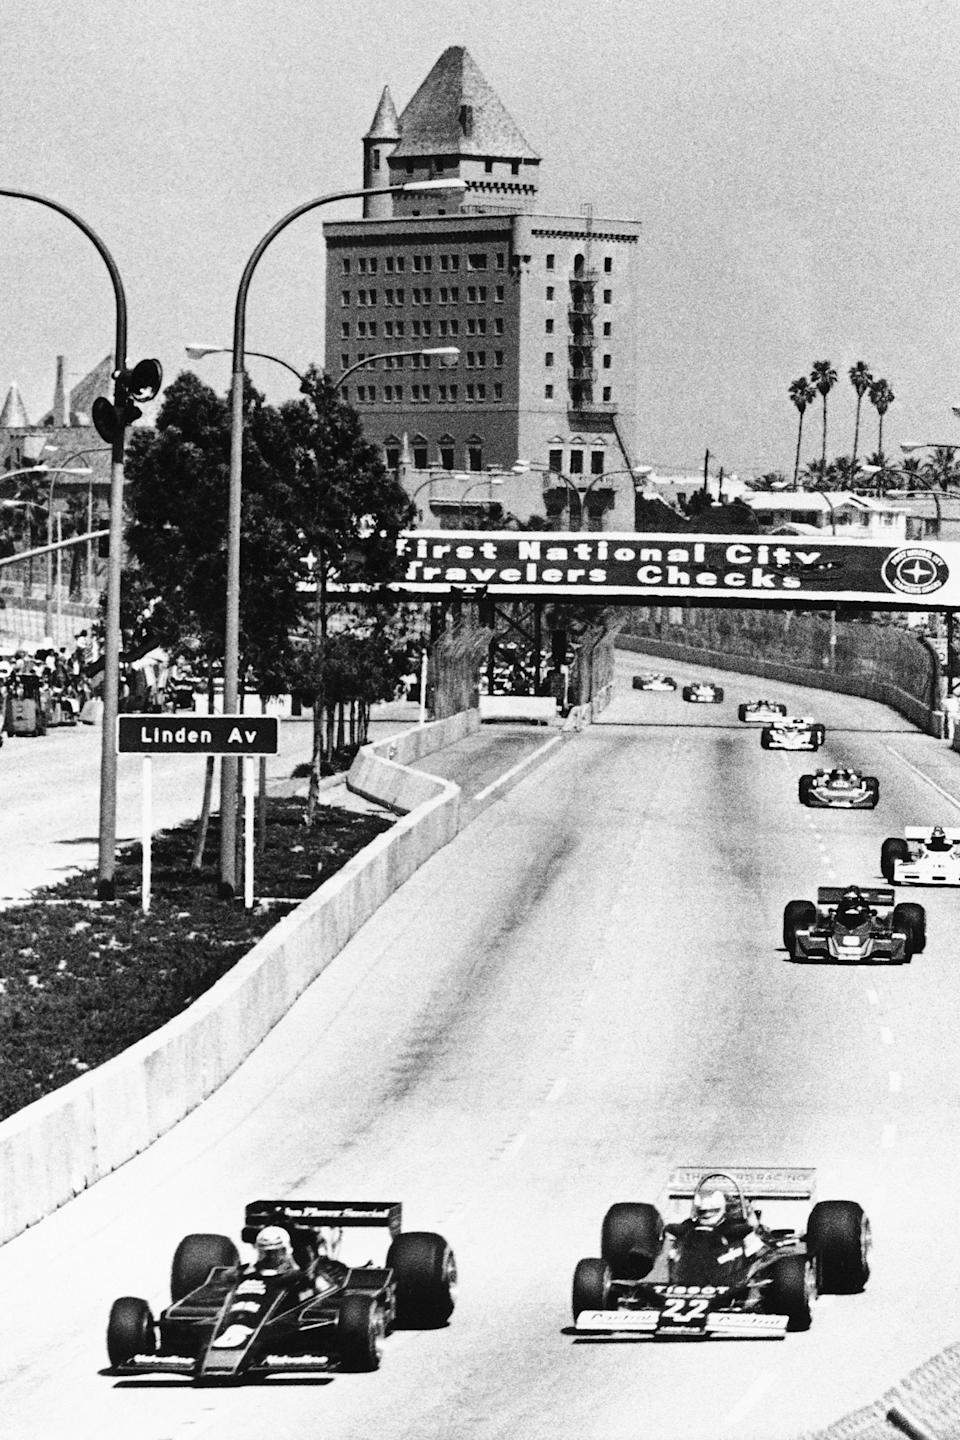 FILE - Formula One drivers Mario Andretti, left, and Clay Regazzoni of Switzerland lead the field through the streets of Long Beach, Calif., during the early laps of the Long Beach Grand Prix, in this April, 3, 1977, file photo. The Grand Prix of Long Beach opens 17 months after the pandemic ended the crown jewel's streak as one of the longest continuously-running street events in racing. The city closed its downtown streets for the first time in 1975 to host a street race that became one of the most prestigious events in both motorsports but also for successful, annual festivals (AP Photo/File)